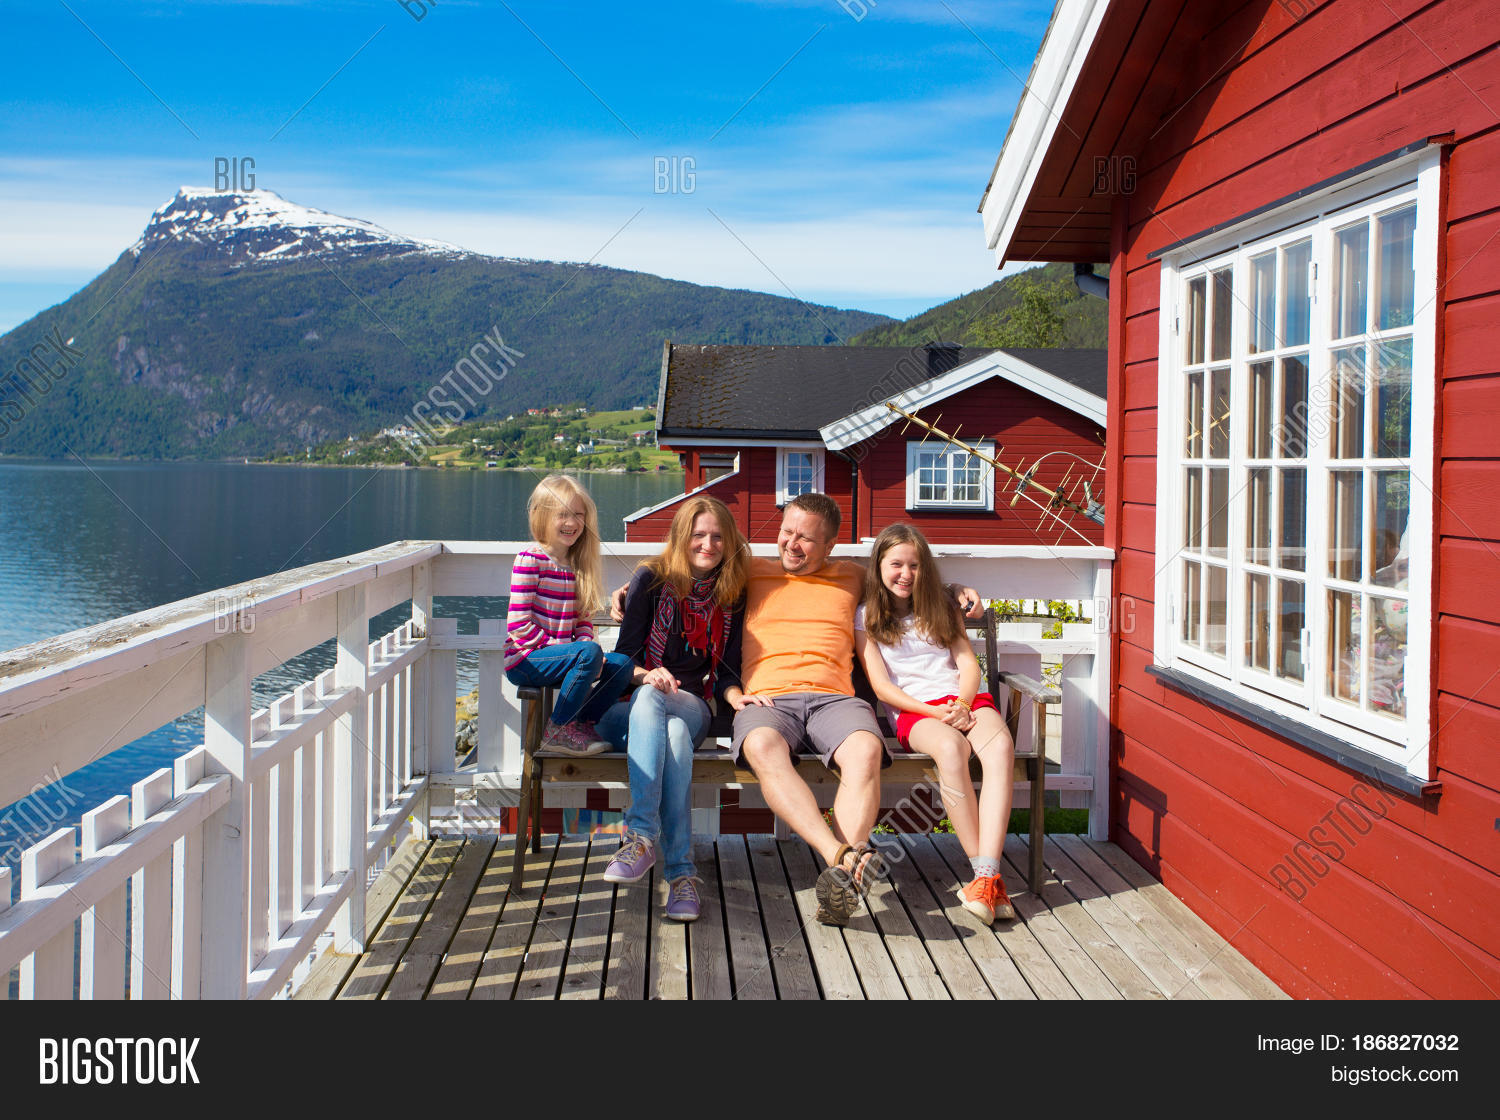 Happy family on wooden terrace image photo bigstock for Kids on the terrace